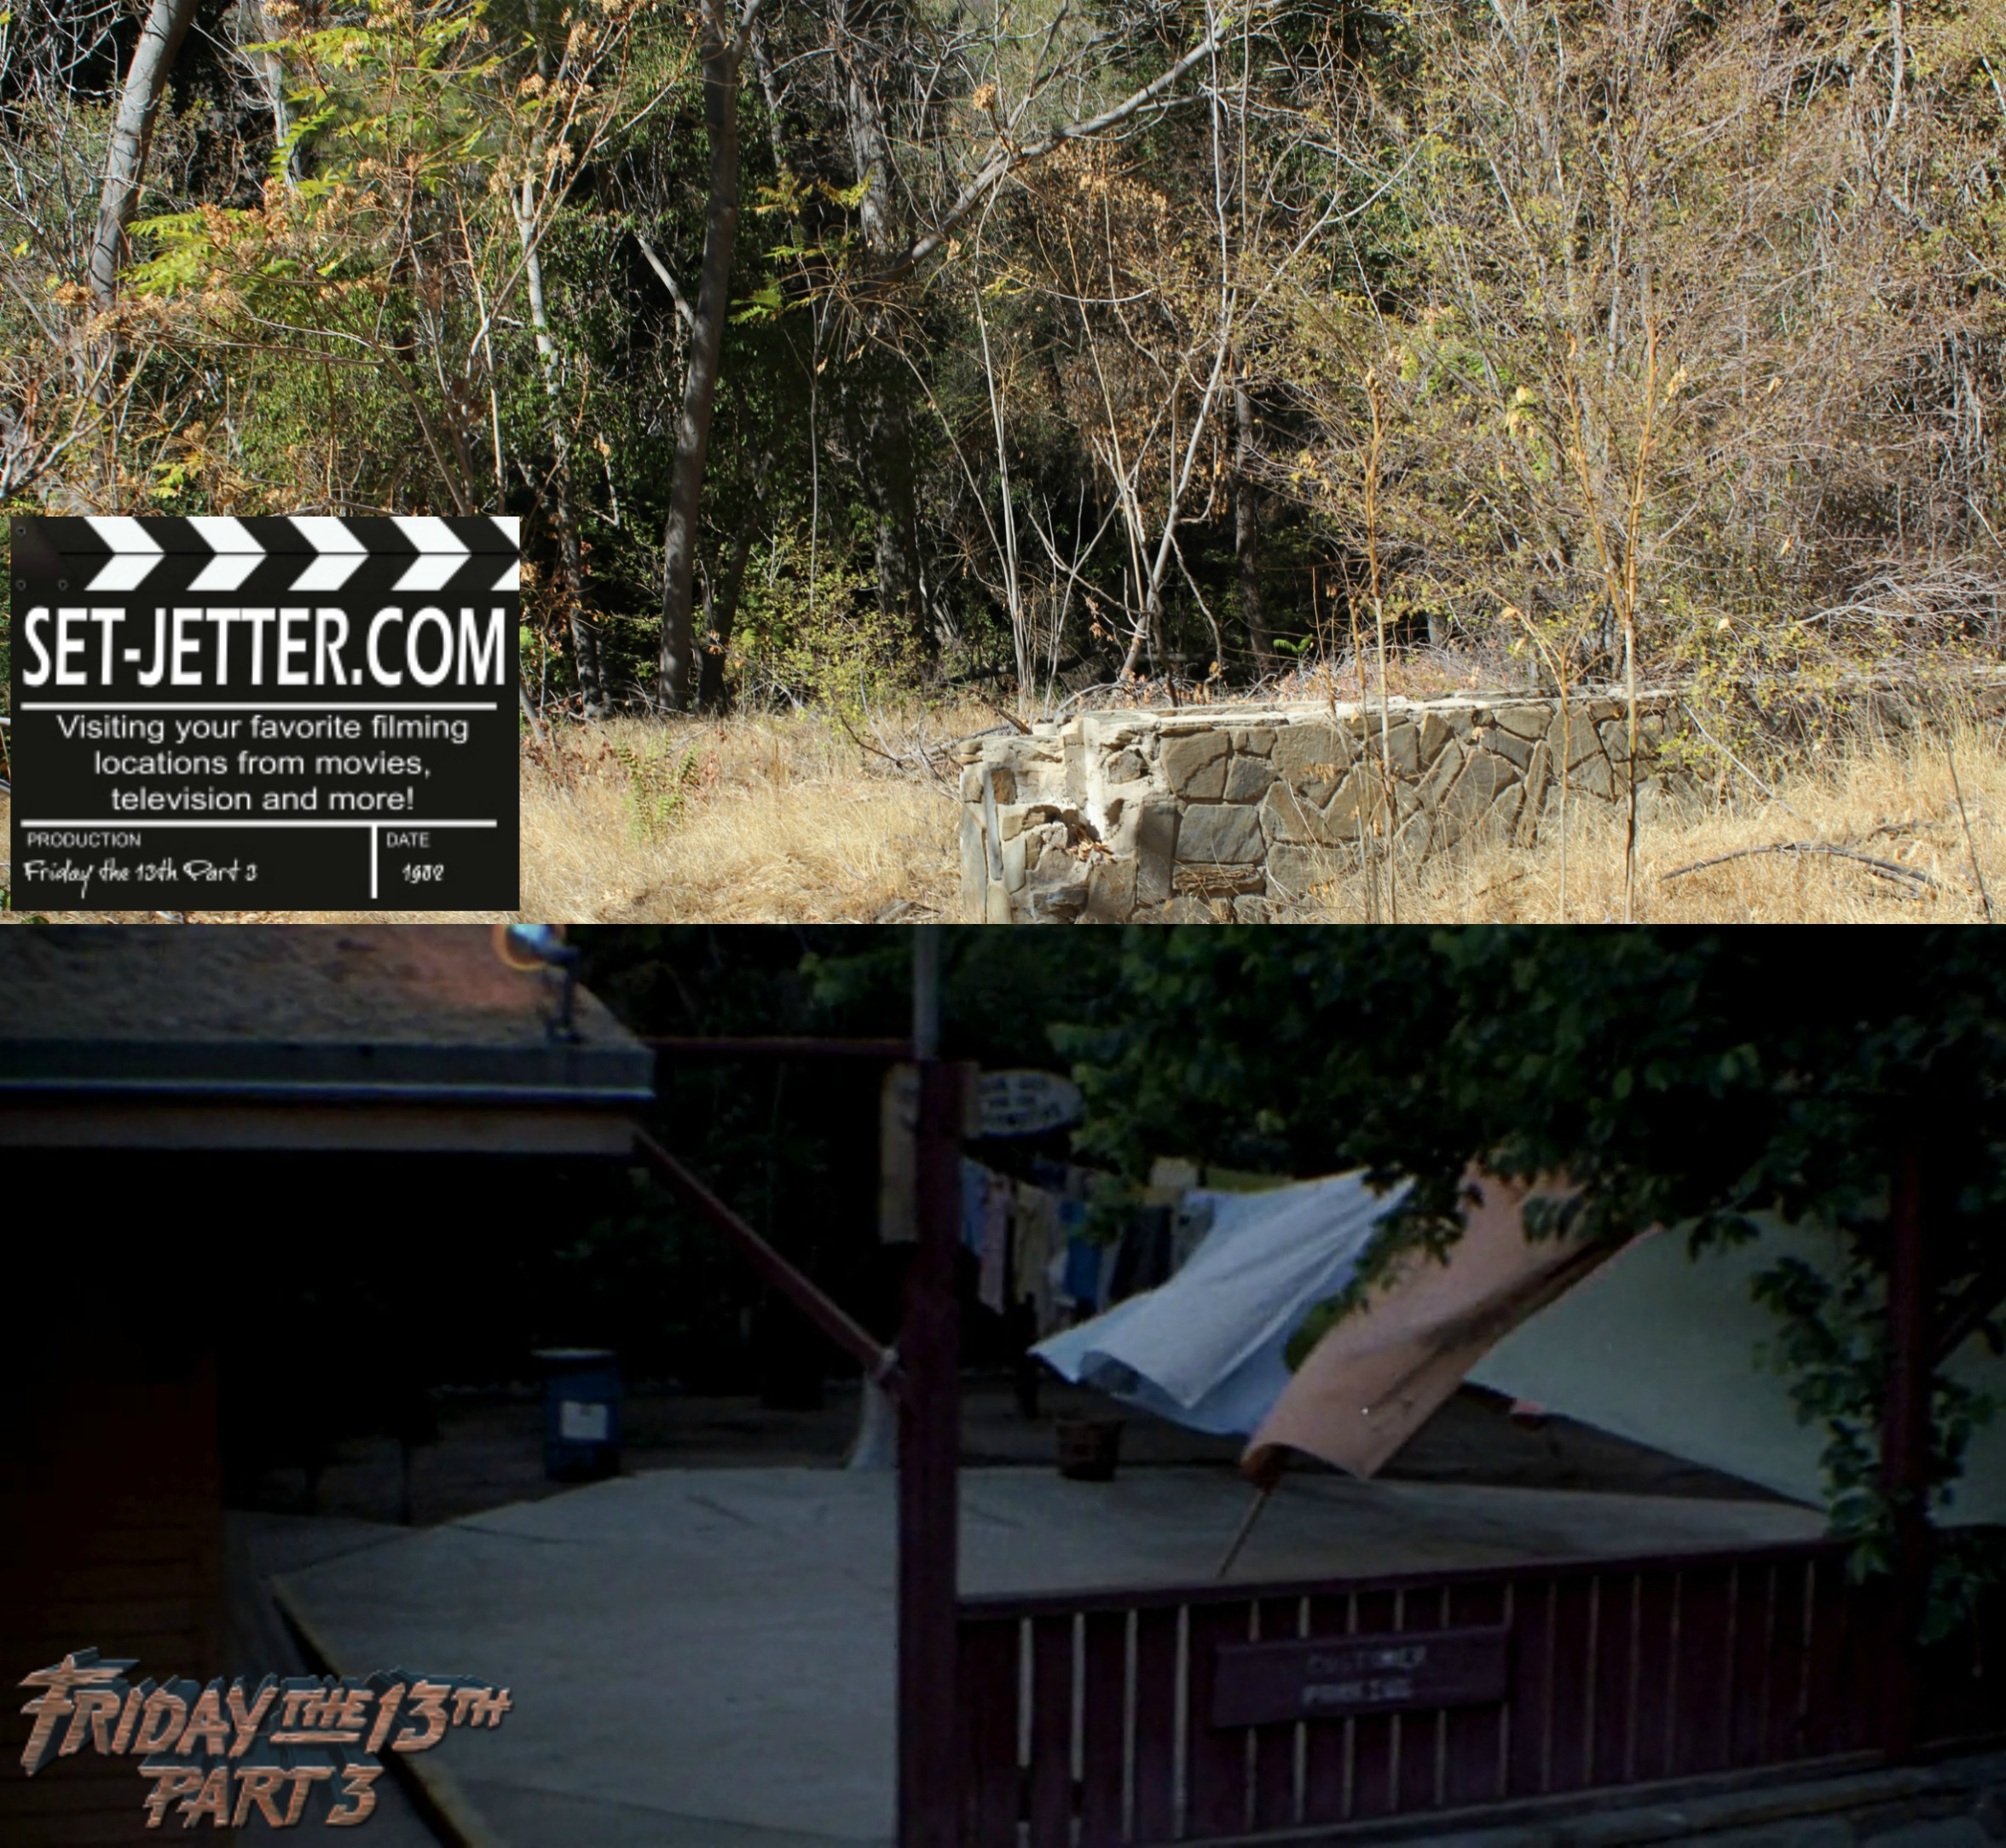 Friday the 13th Part 3 comparison 207.jpg